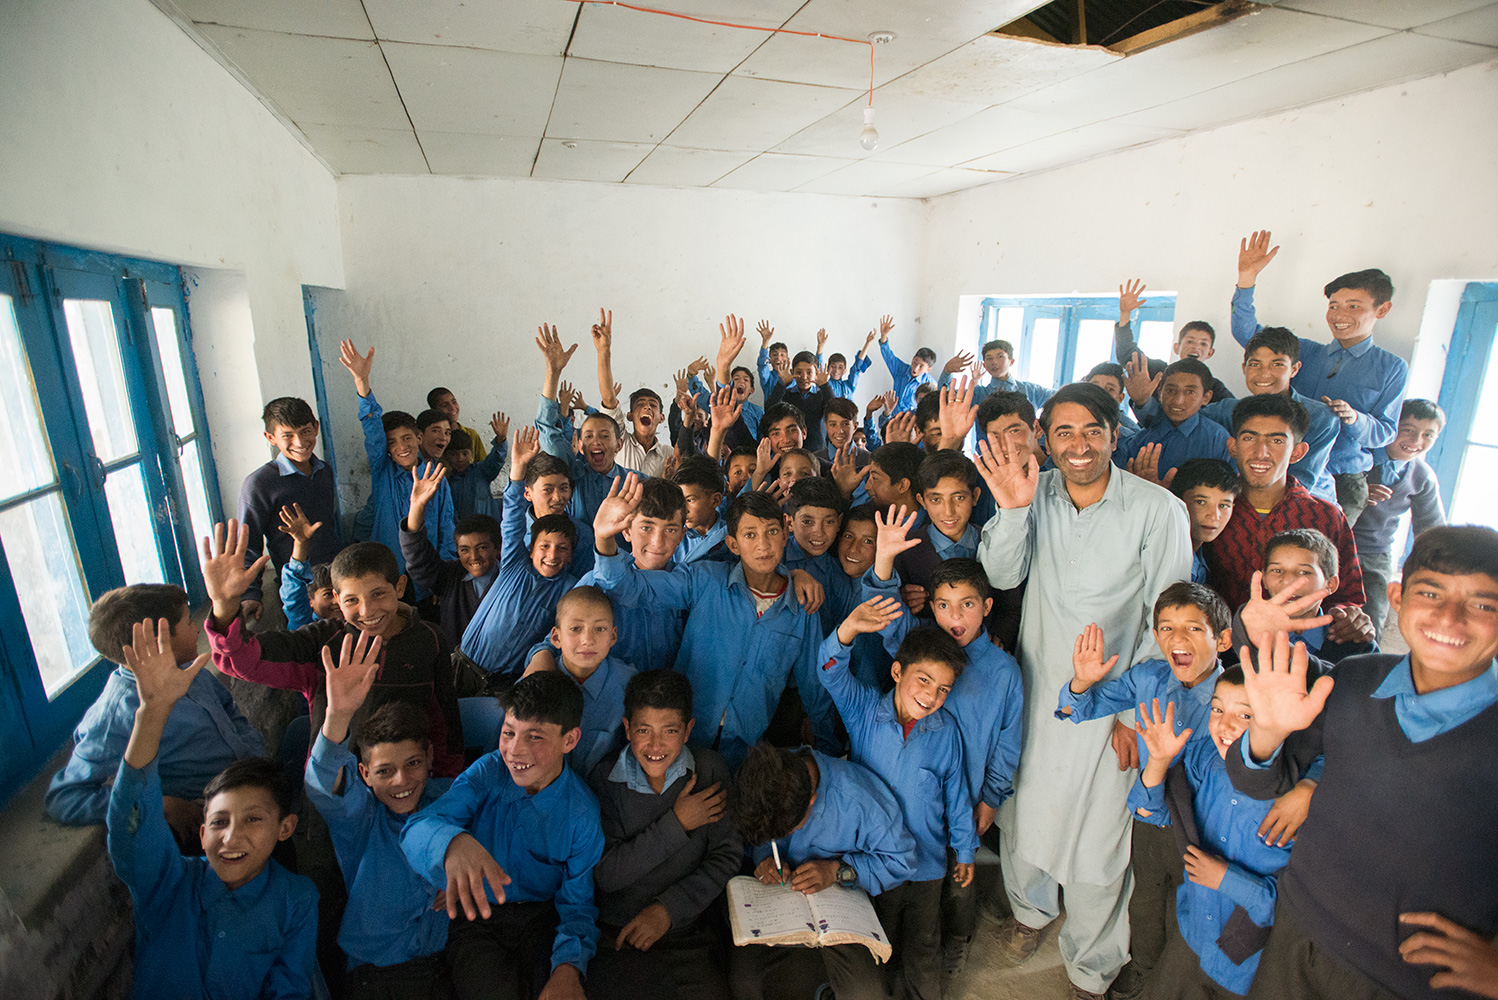 One of the boys' classroomsWhen I got back to Askole at the end of this trip, I received a message from The Juniper Trust requesting that I go to the school and take some pictures for them as they were considering helping to fund the place. Always happy to help and such a joy to spend an hour with the children!To find out more please visit the Juniper Trust web sitehttp://thejunipertrust.org